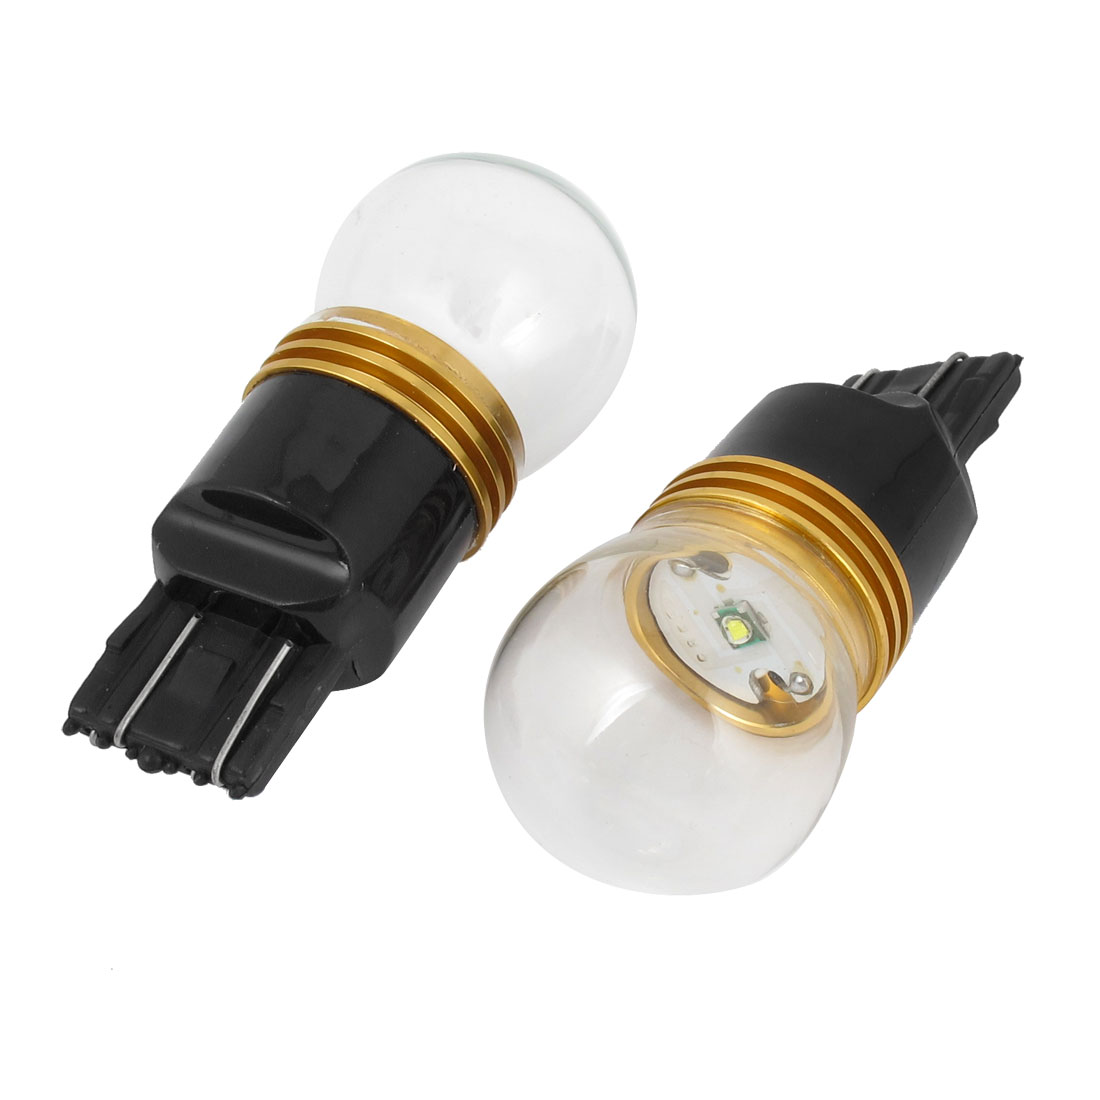 2 Pcs 5W 7443 Socket Clear Glass Shell White Turn Signal Light for Car Auto